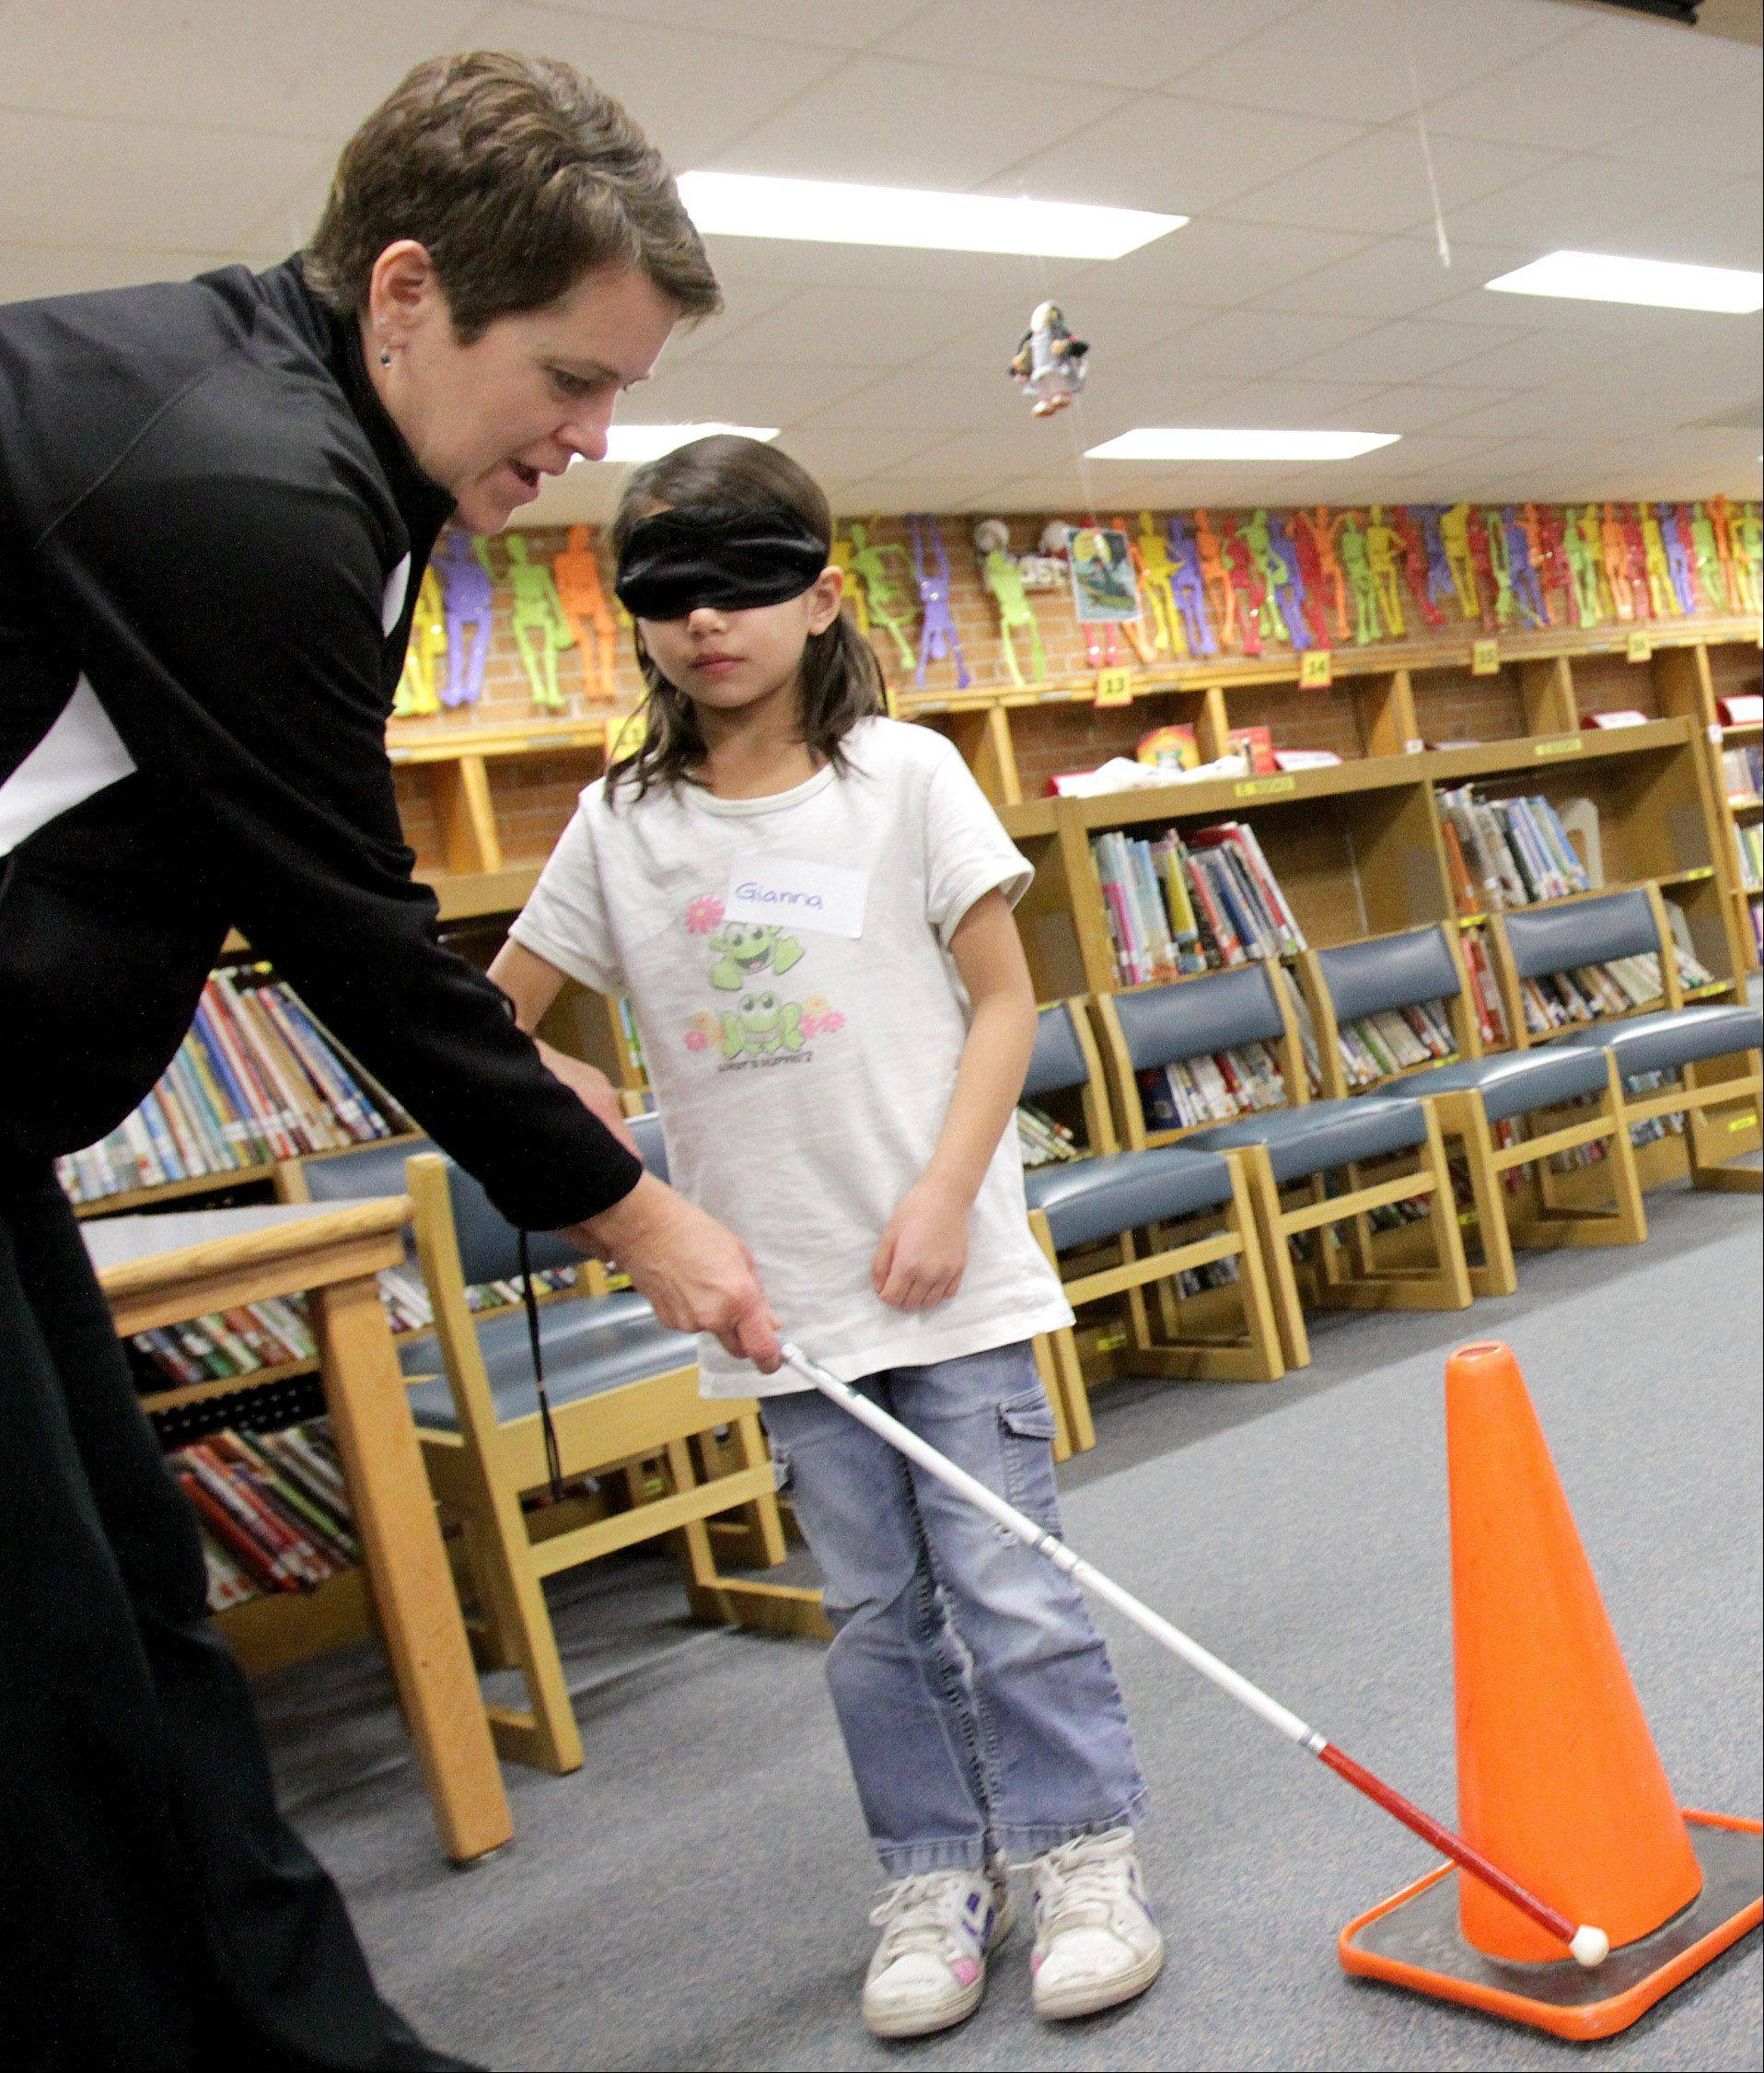 Lori Miller, left, manager of program development at Northeast DuPage Special Recreation Association, helps Gianna Pon use a cane for the blind on Wednesday at Benson Primary School in Itasca.